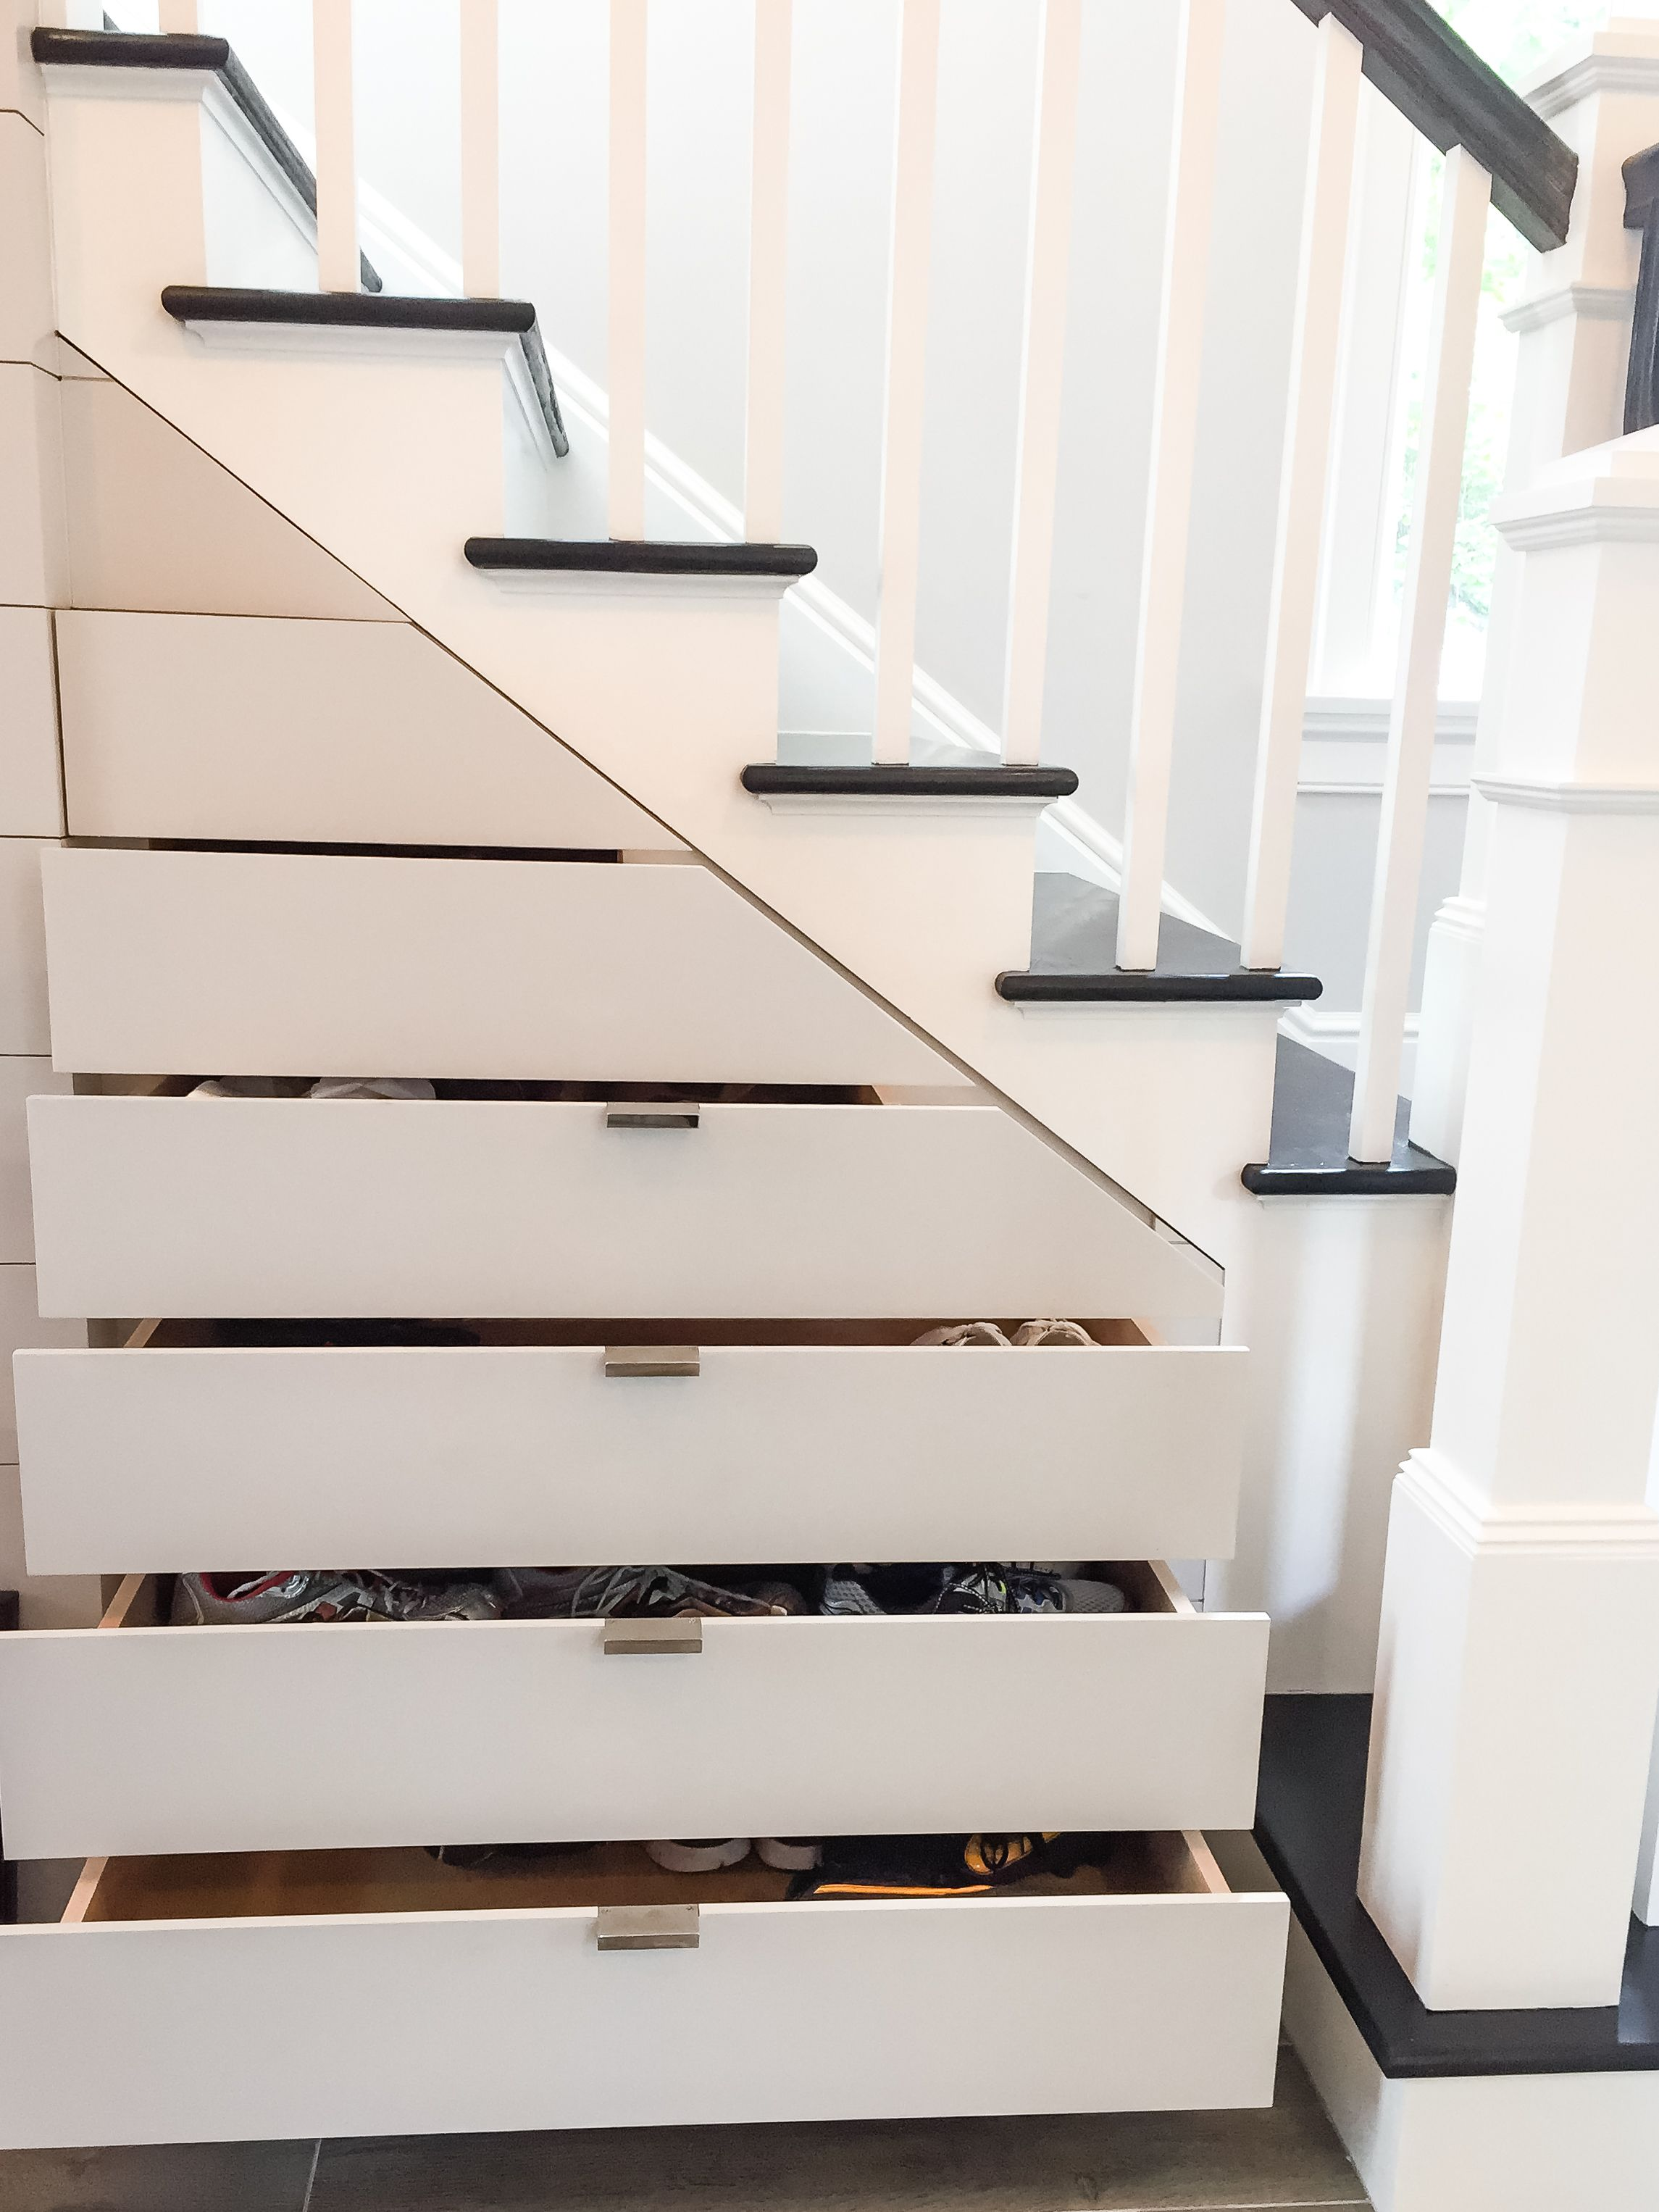 Hidden Drawers Below Staircase Stairs Storage Drawers Staircase